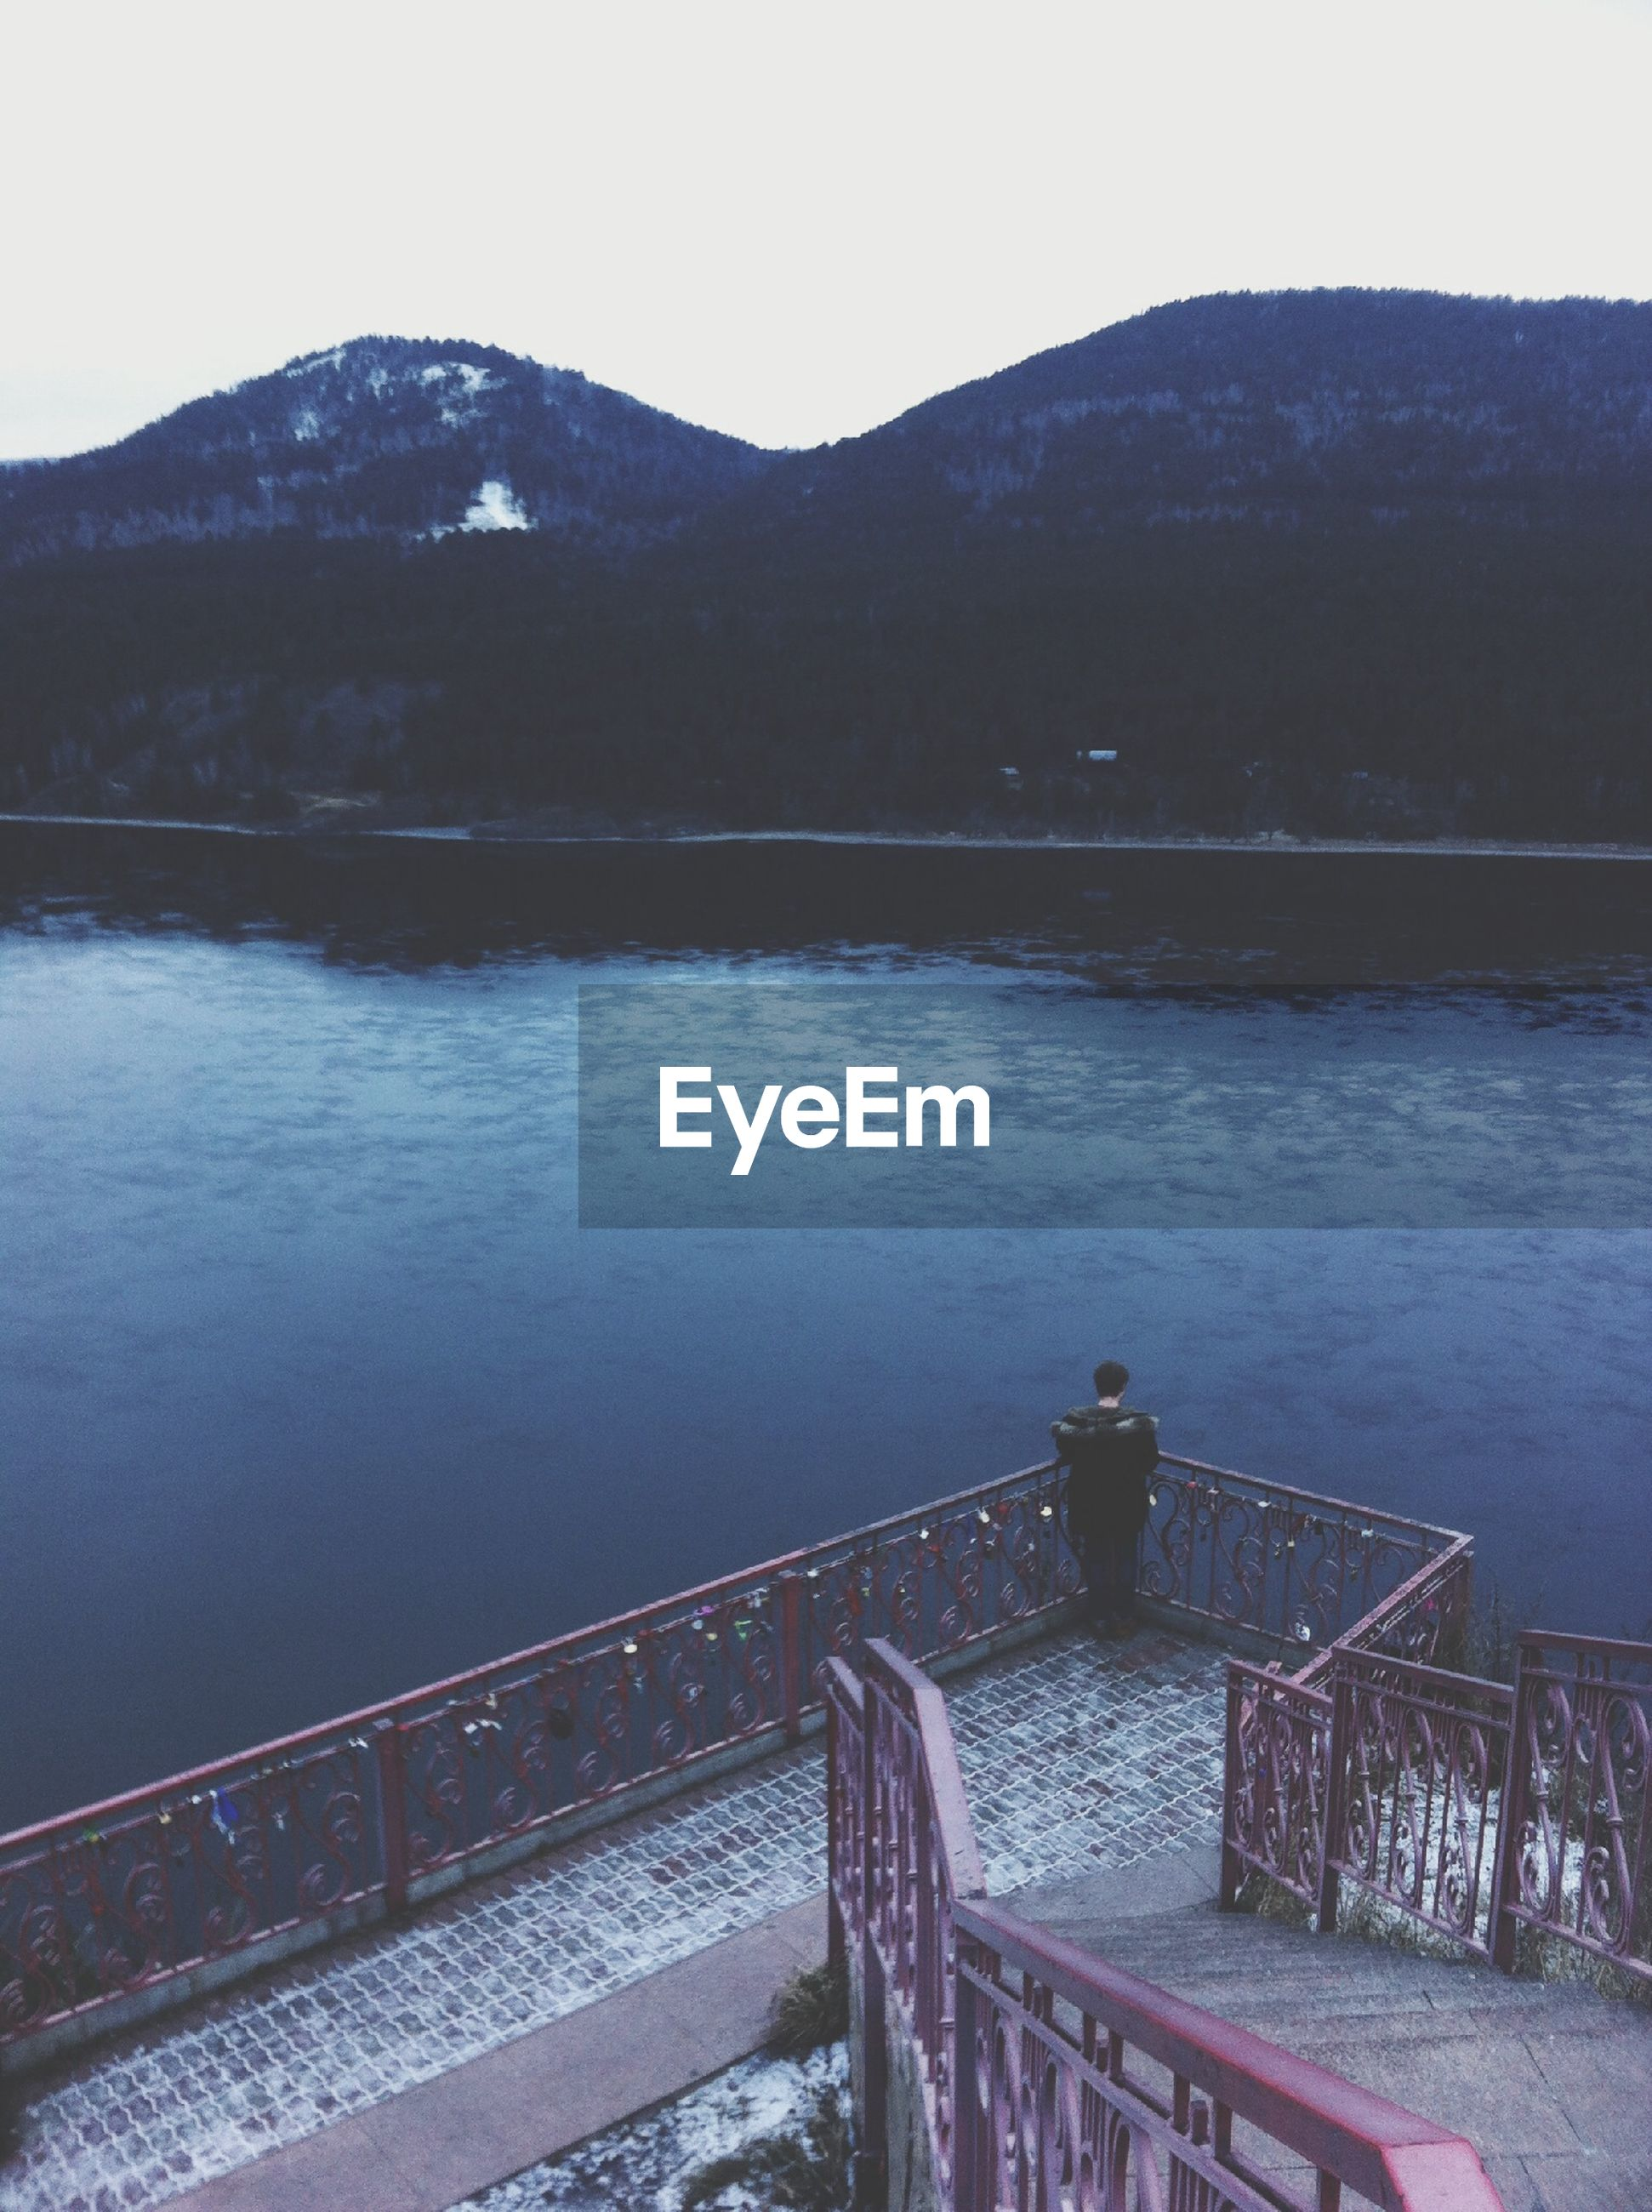 mountain, water, mountain range, river, lake, built structure, railing, architecture, tranquility, bridge - man made structure, scenics, clear sky, tranquil scene, sky, nature, beauty in nature, connection, outdoors, sea, building exterior